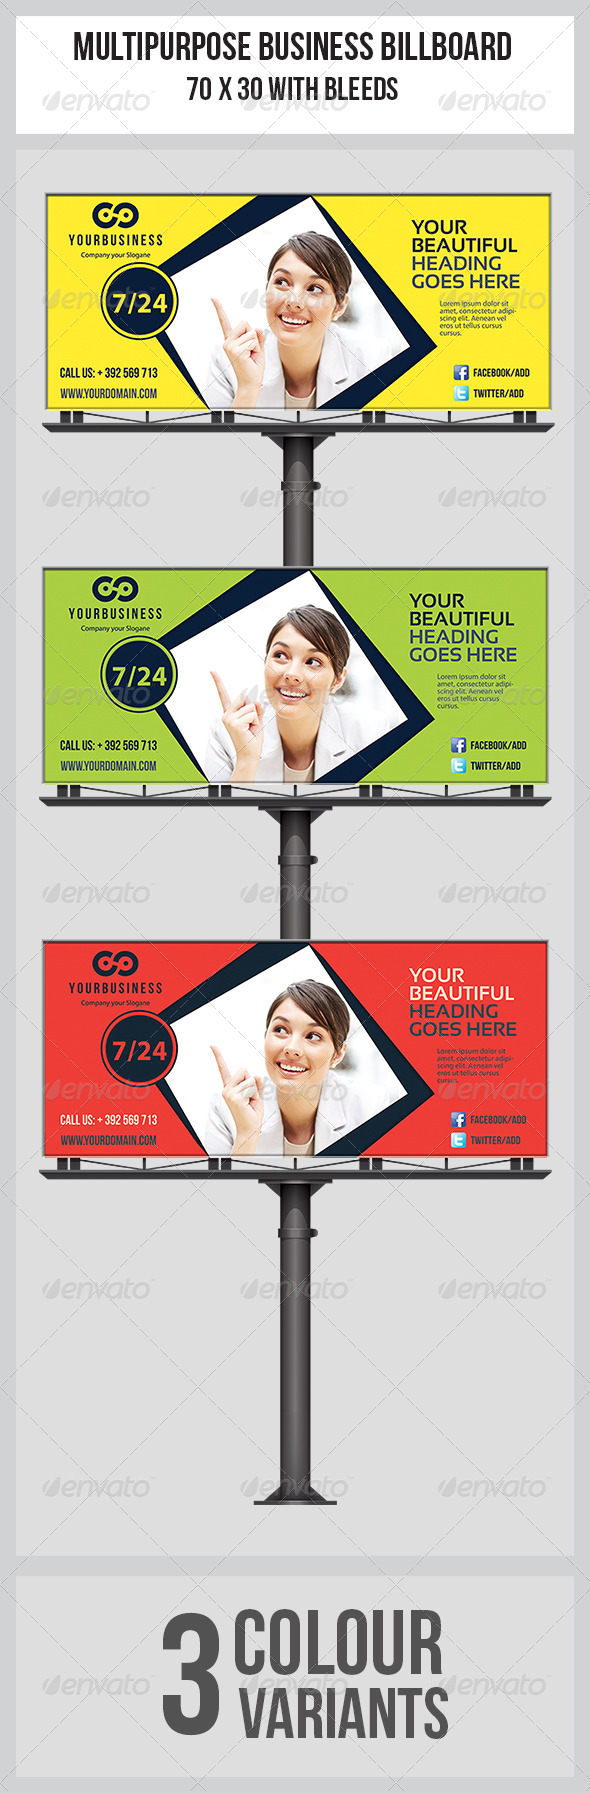 GraphicRiver Multipurpose Business Billboard Template 6897148